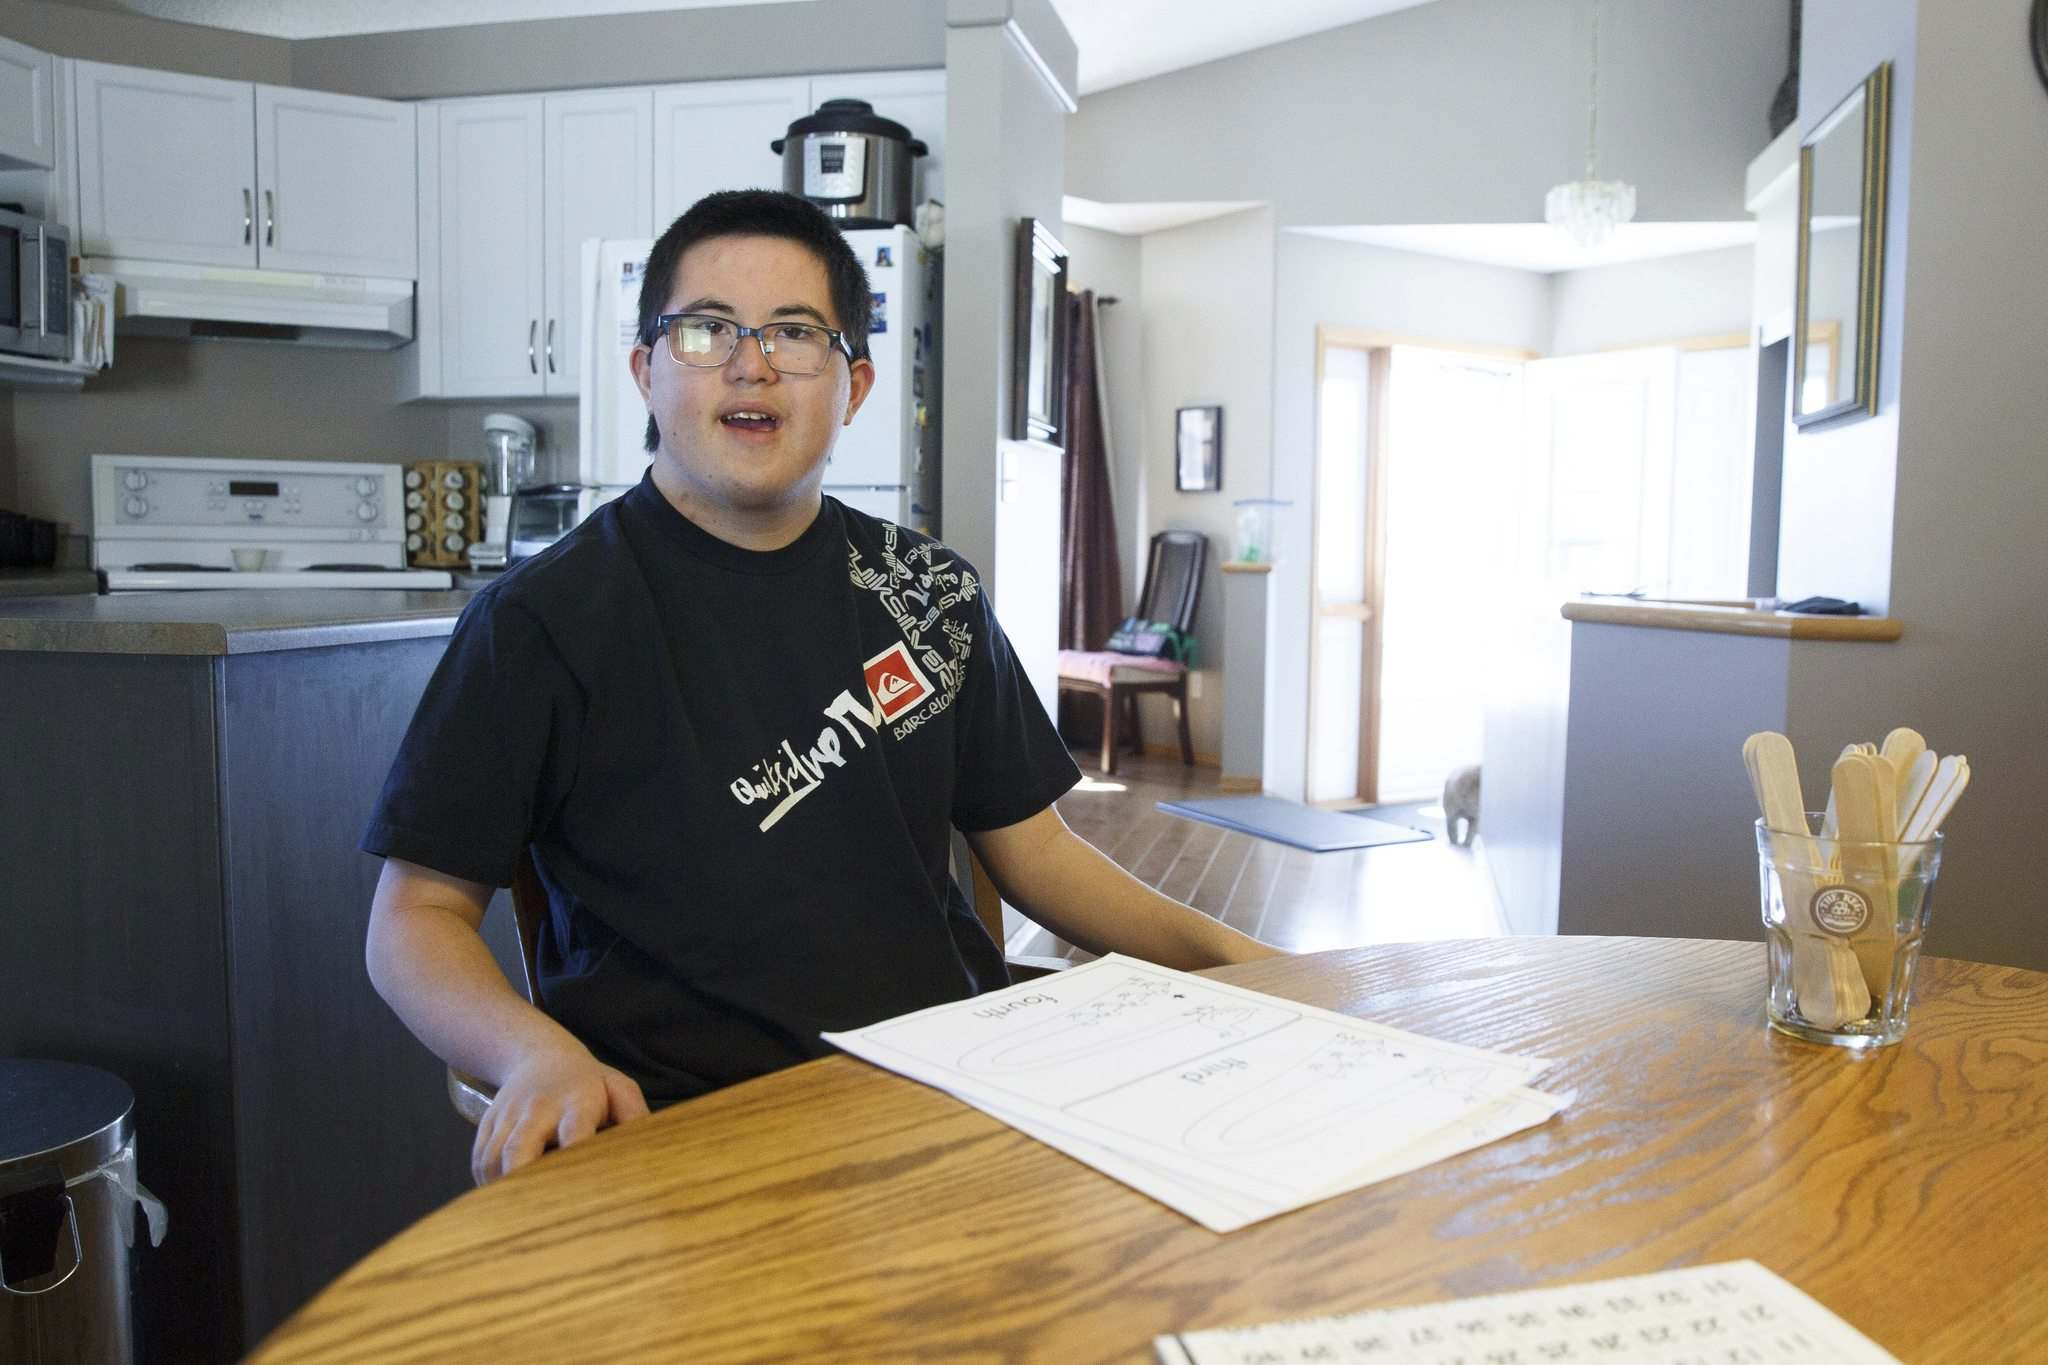 Daniel Cowen, 20, is about to lose 'the closest thing to a regular day' he has, and it's frustrating to his mother, Cathy. (Mike Deal / Winnipeg Free Press)